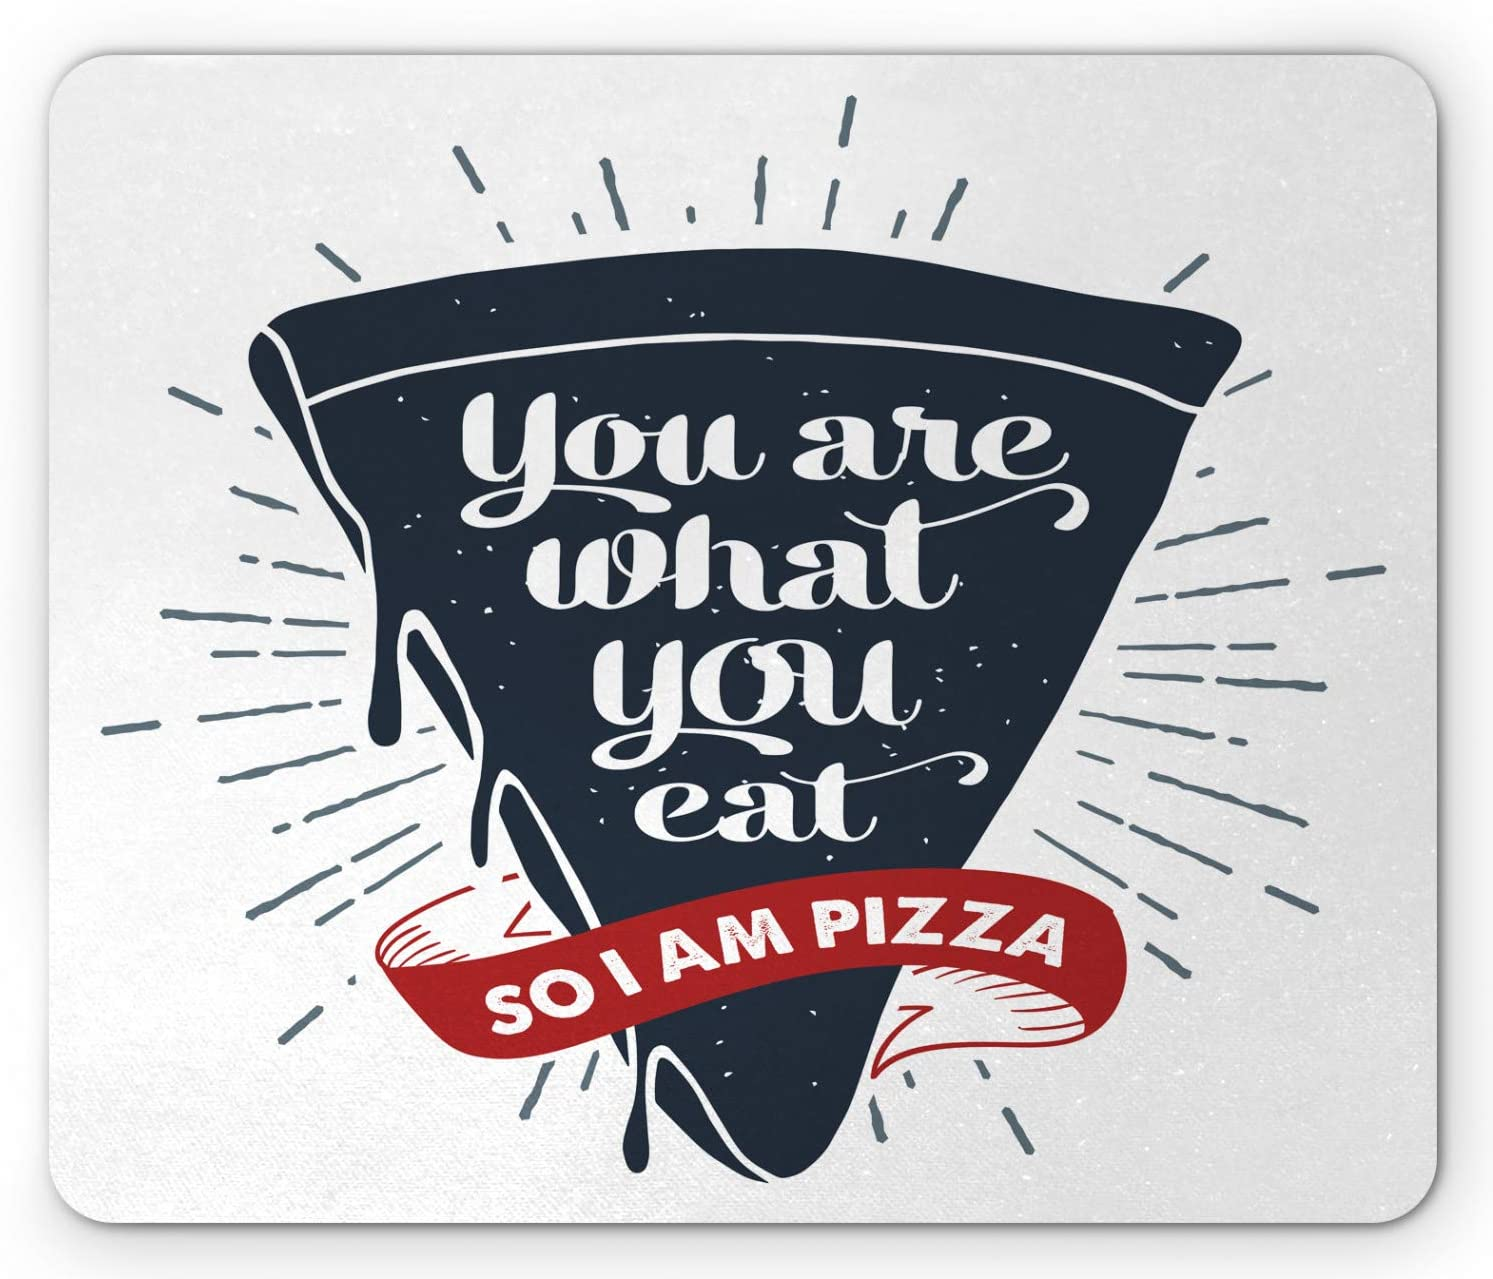 Ambesonne Funny Words Mouse Pad, Grunge Pizza Slice with Retro Effect Humor Phrase About Fast Food, Rectangle Non-Slip Rubber Mousepad, Standard Size, Blue Grey